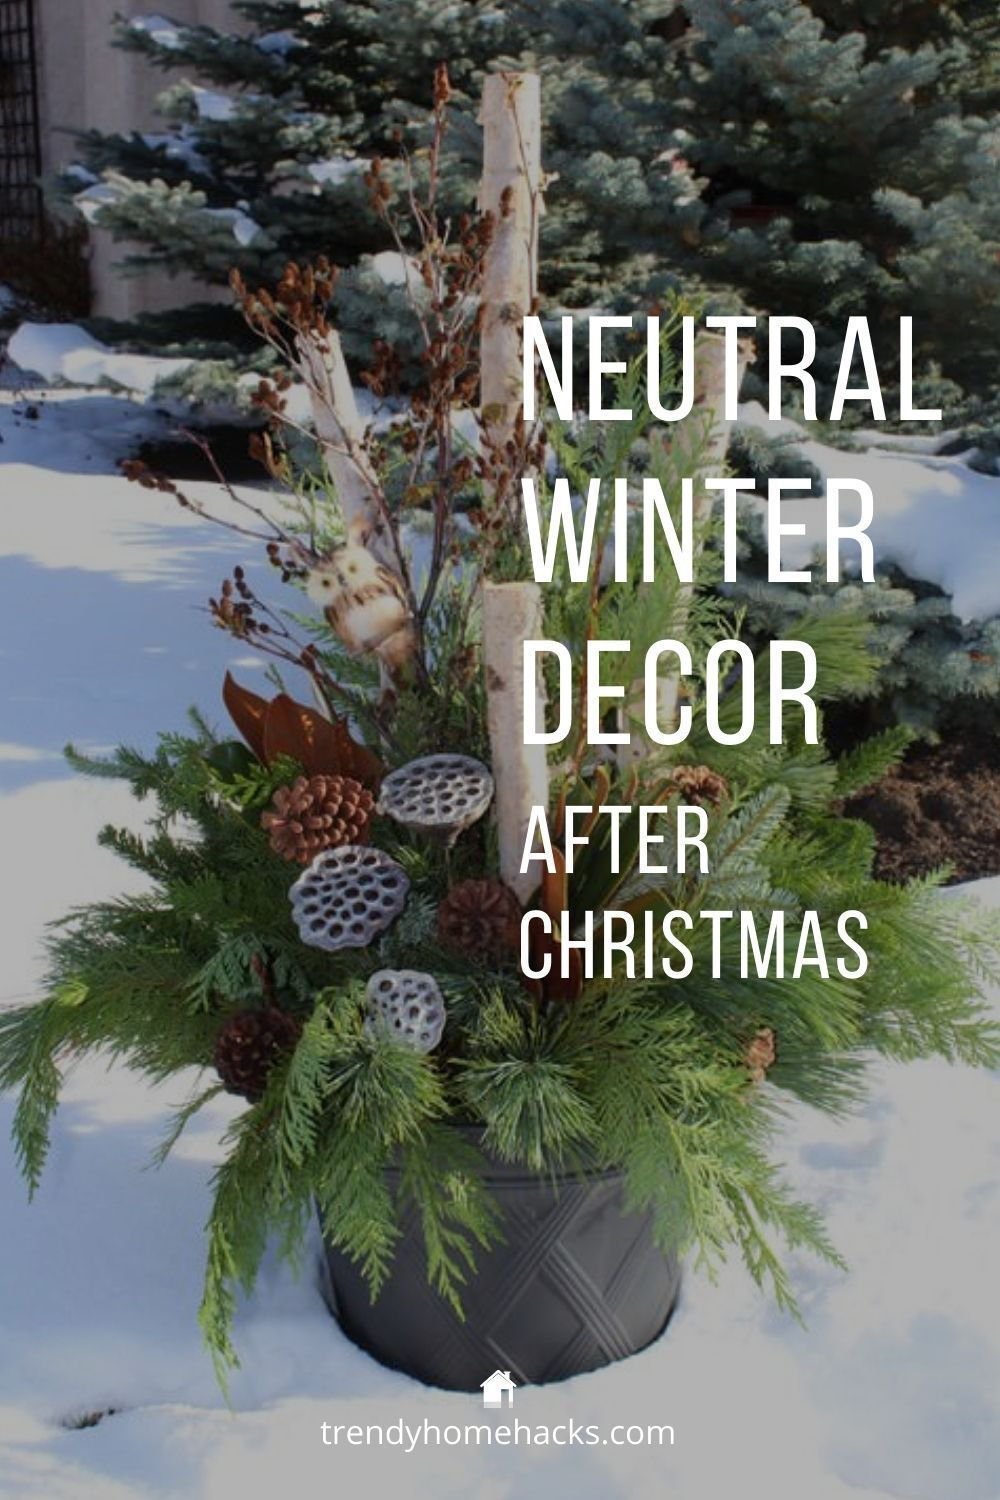 Neutral Winter Decor How To Decorate After Christmas Trendy Home Hacks Winter Decor Neutral Winter Decor Winter Decorations Diy